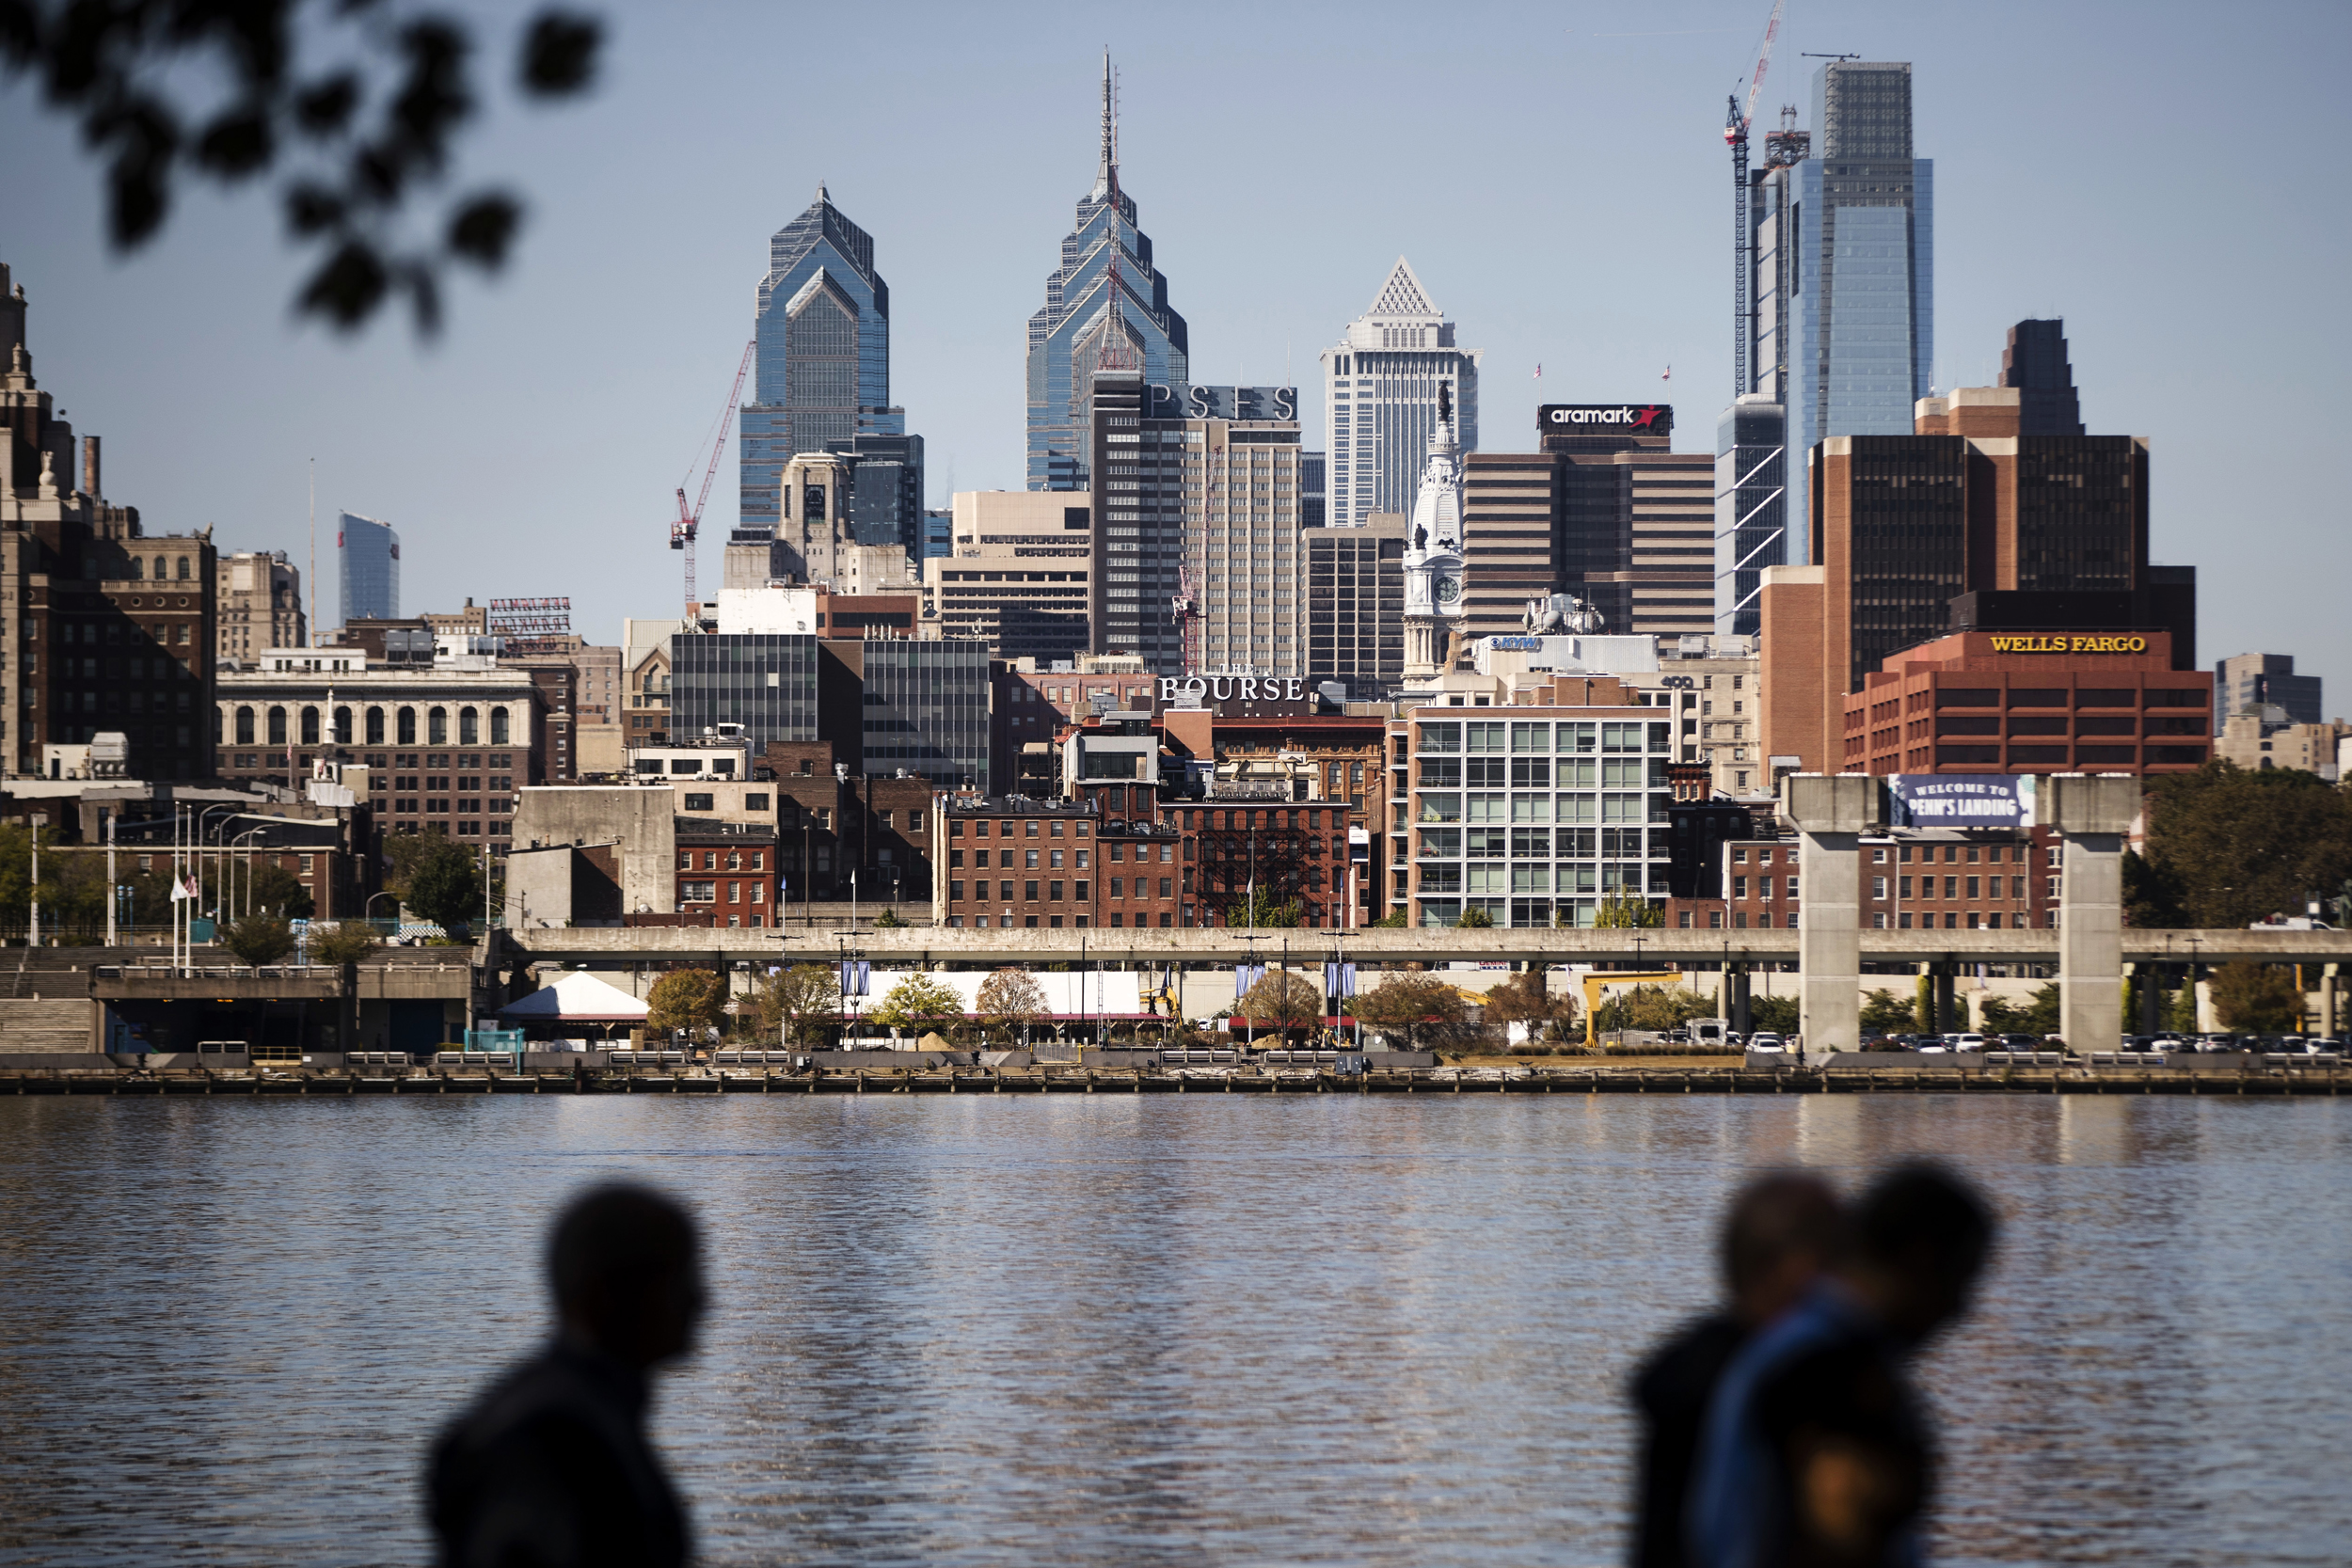 Philadelphia can exclude foster agency that won't work with gays, court rules